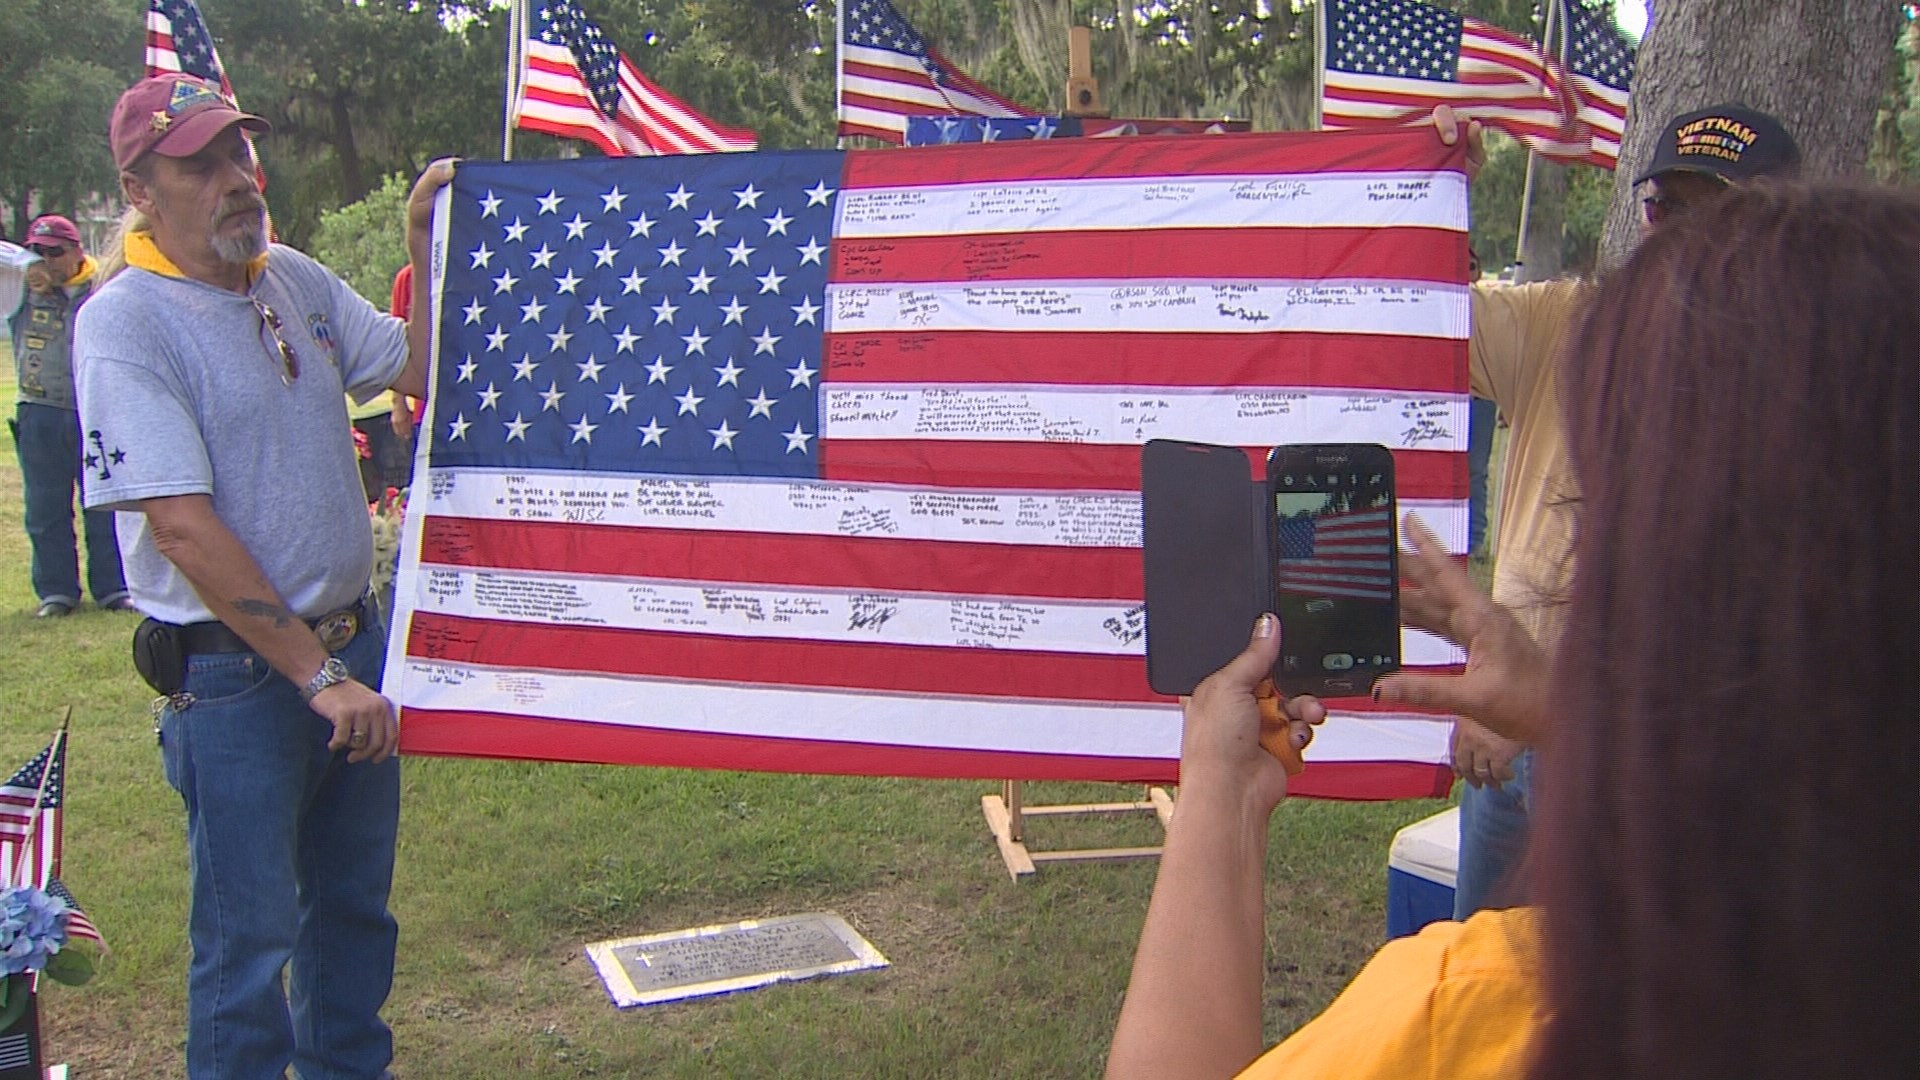 Tribute flag presented to Marine's mother after being lost for 9 years